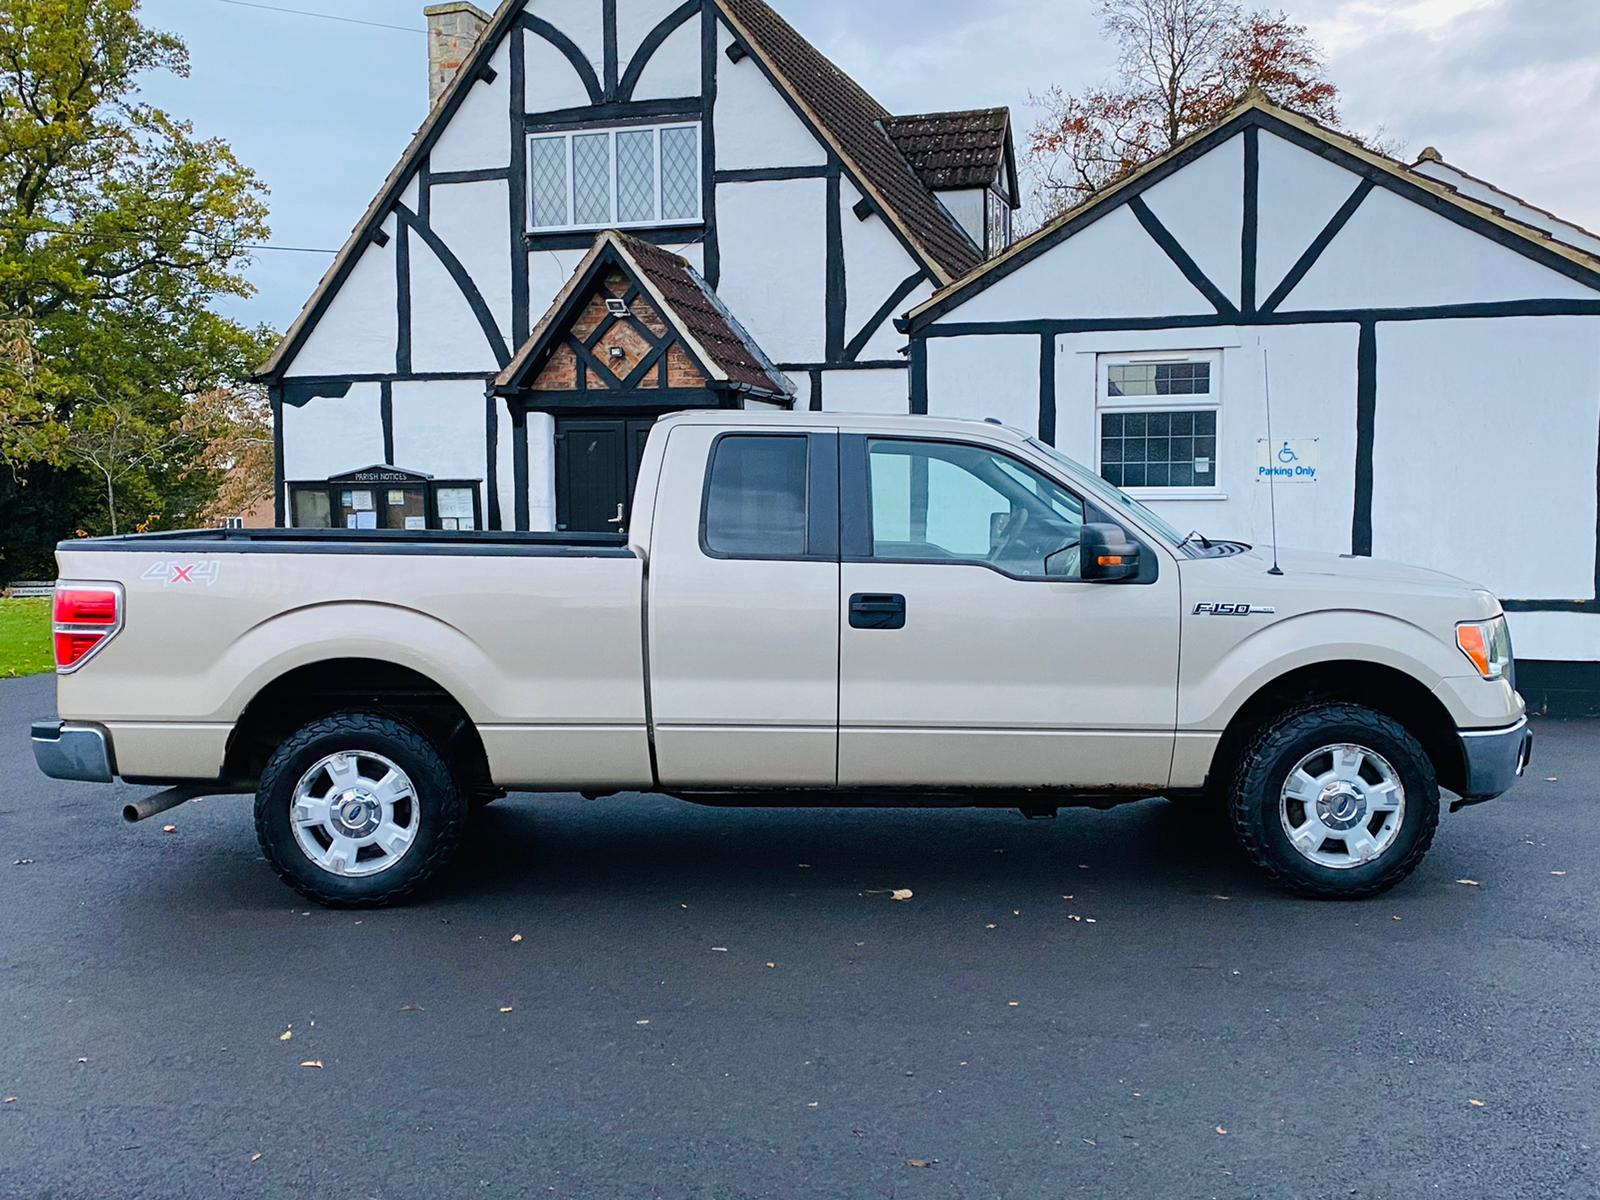 (RESERVE MET) Ford F-150 XLT 4.6L V8 Supercab - 2010 Year - 6 Seats - Fresh Imports - Image 7 of 39